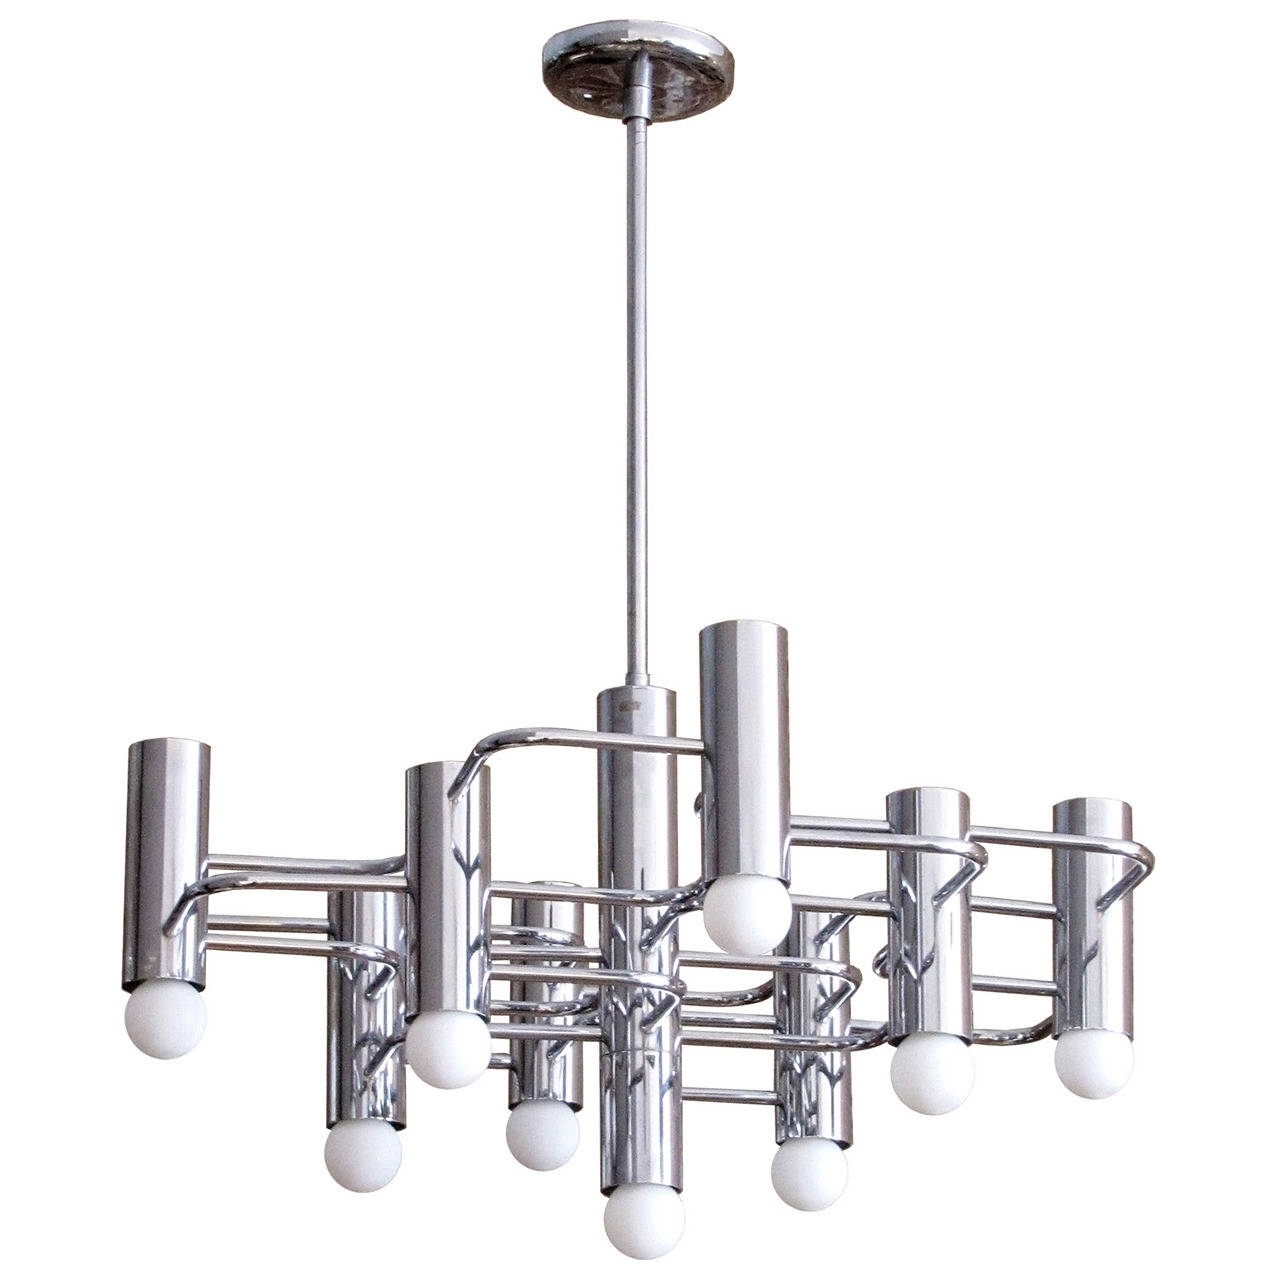 Chrome Chandeliers Pertaining To Newest Boulanger Chrome Chandelier, 1960 For Sale At 1Stdibs (View 7 of 15)